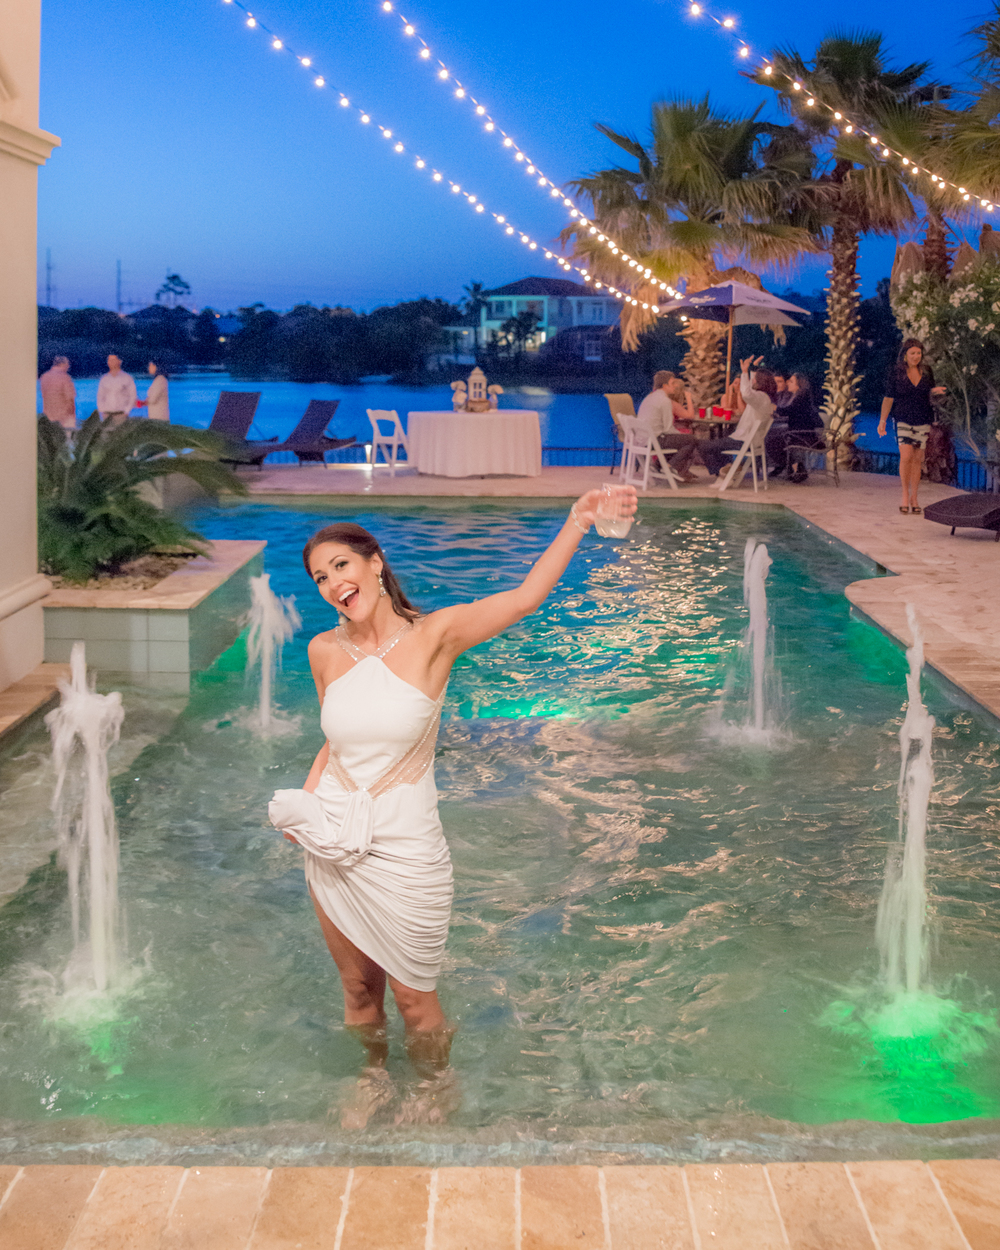 destin florida beach wedding and poolside reception